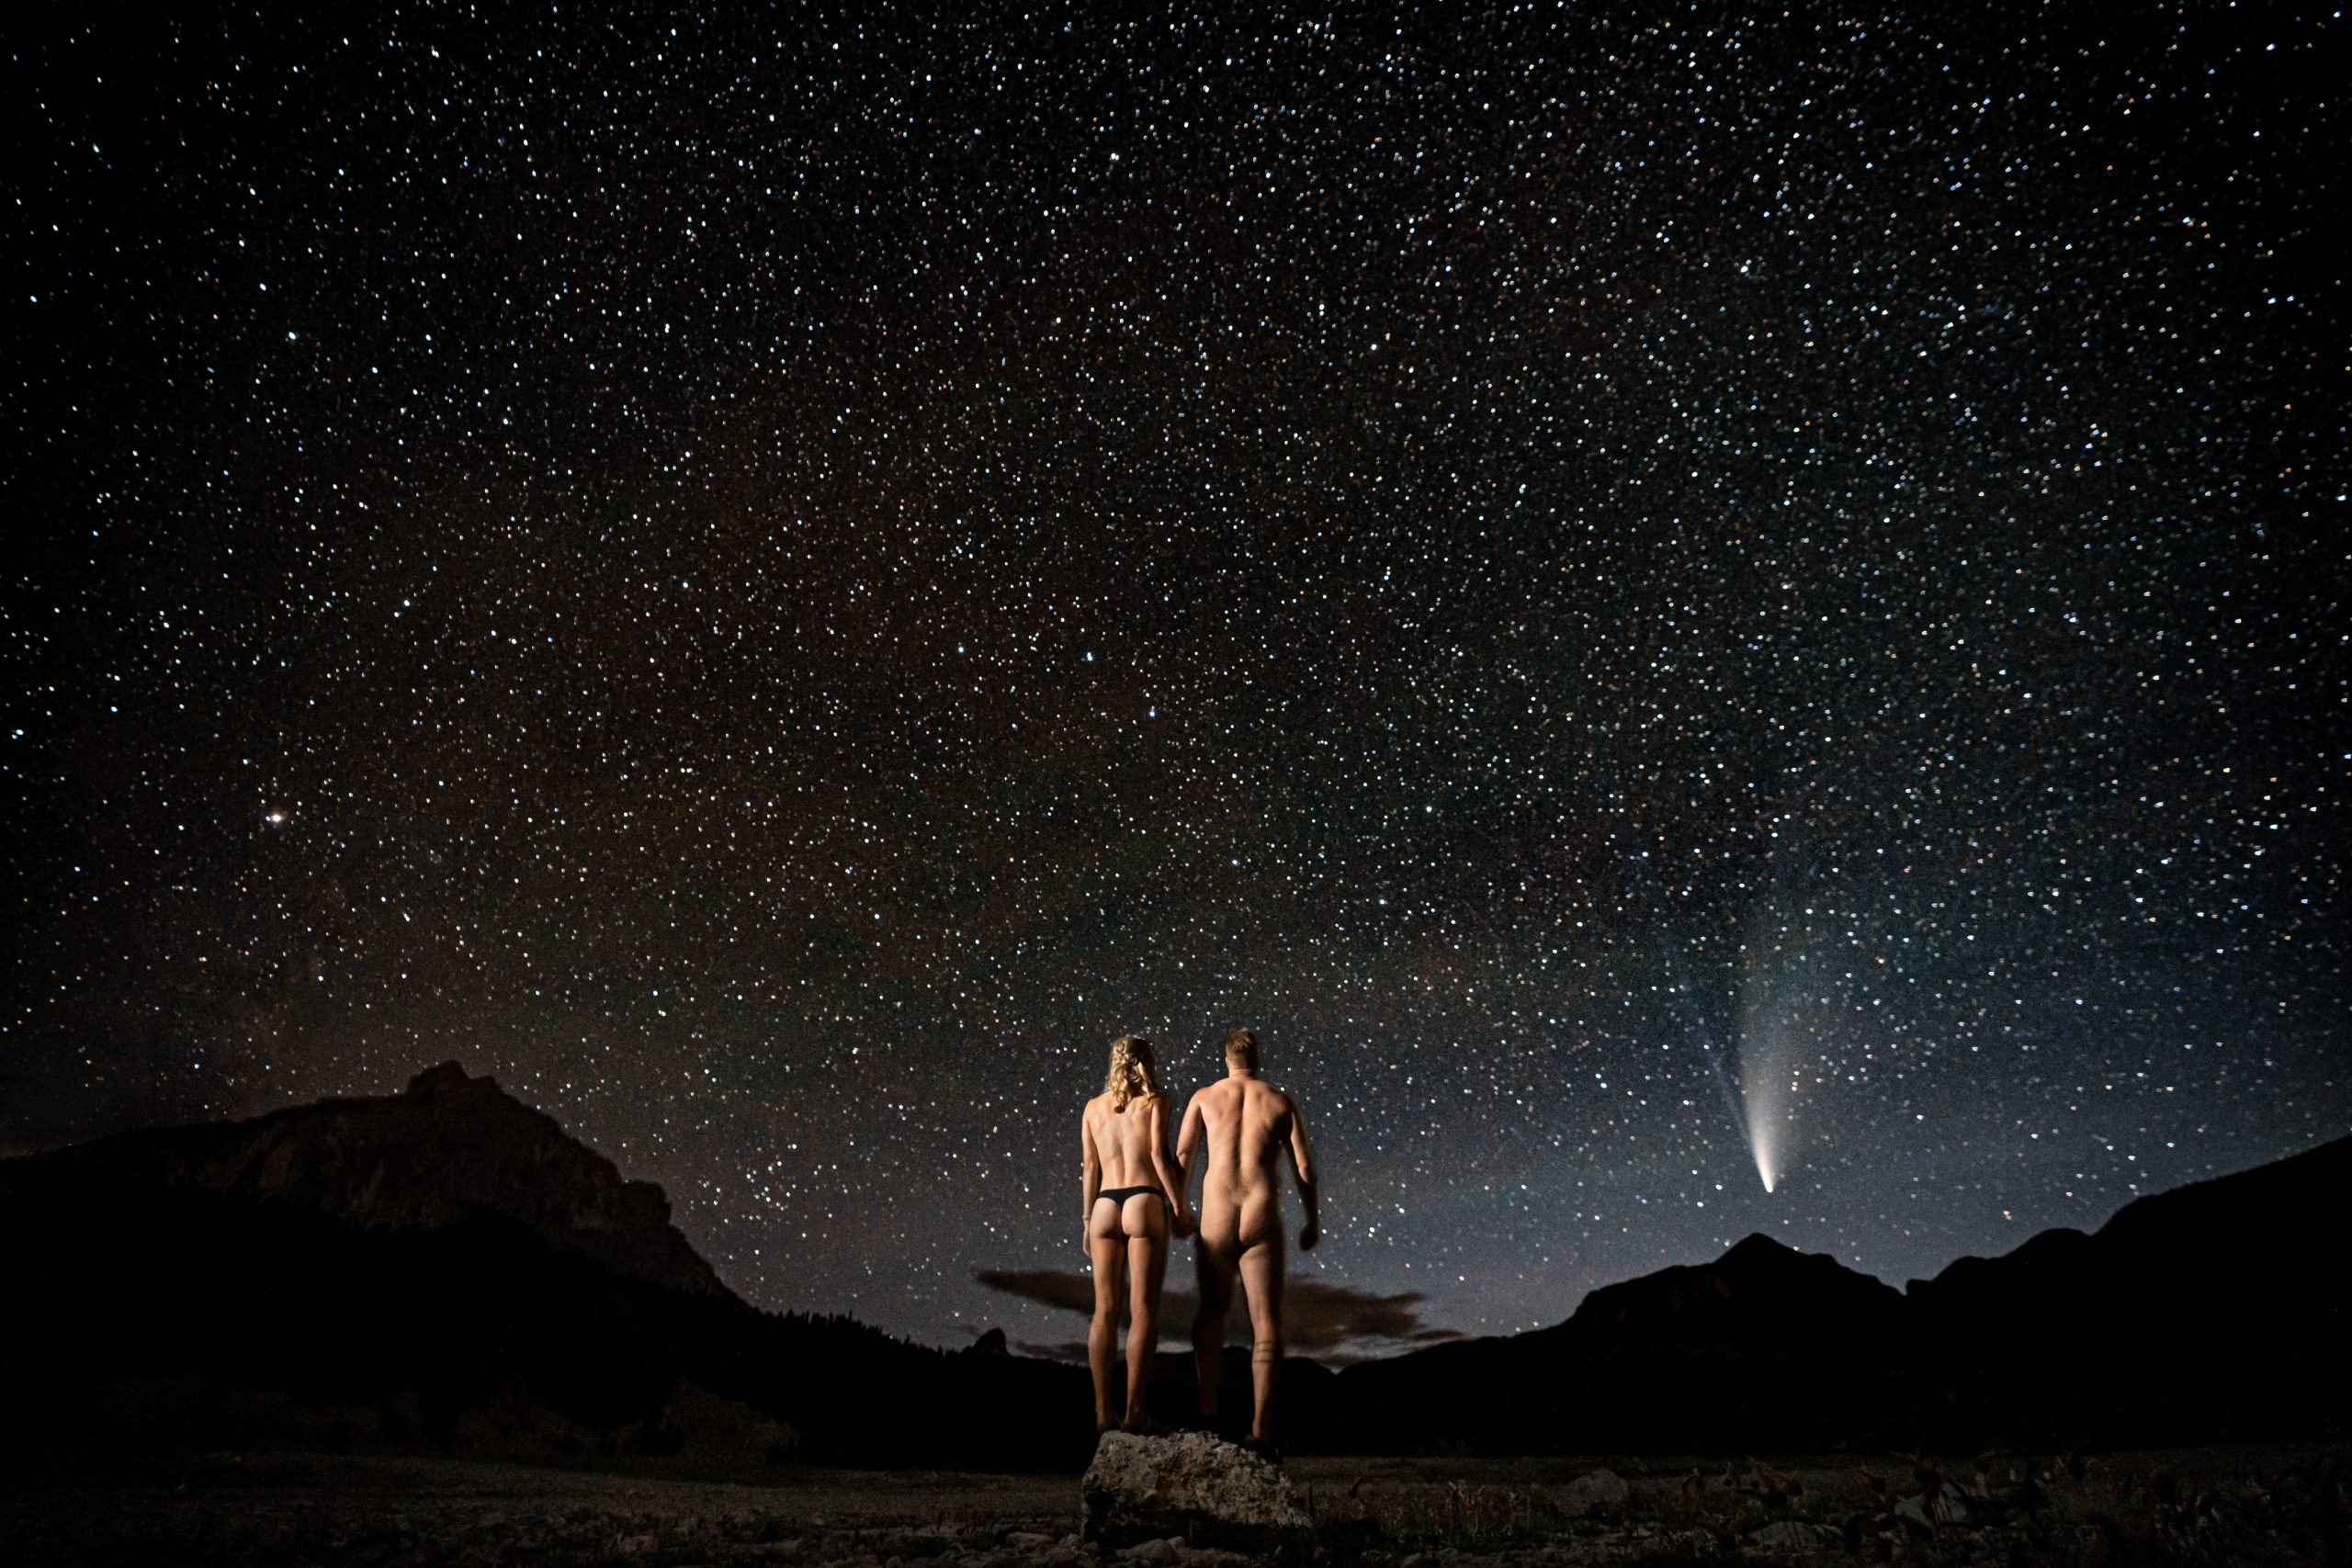 photo of a man and woman outside during a starry night